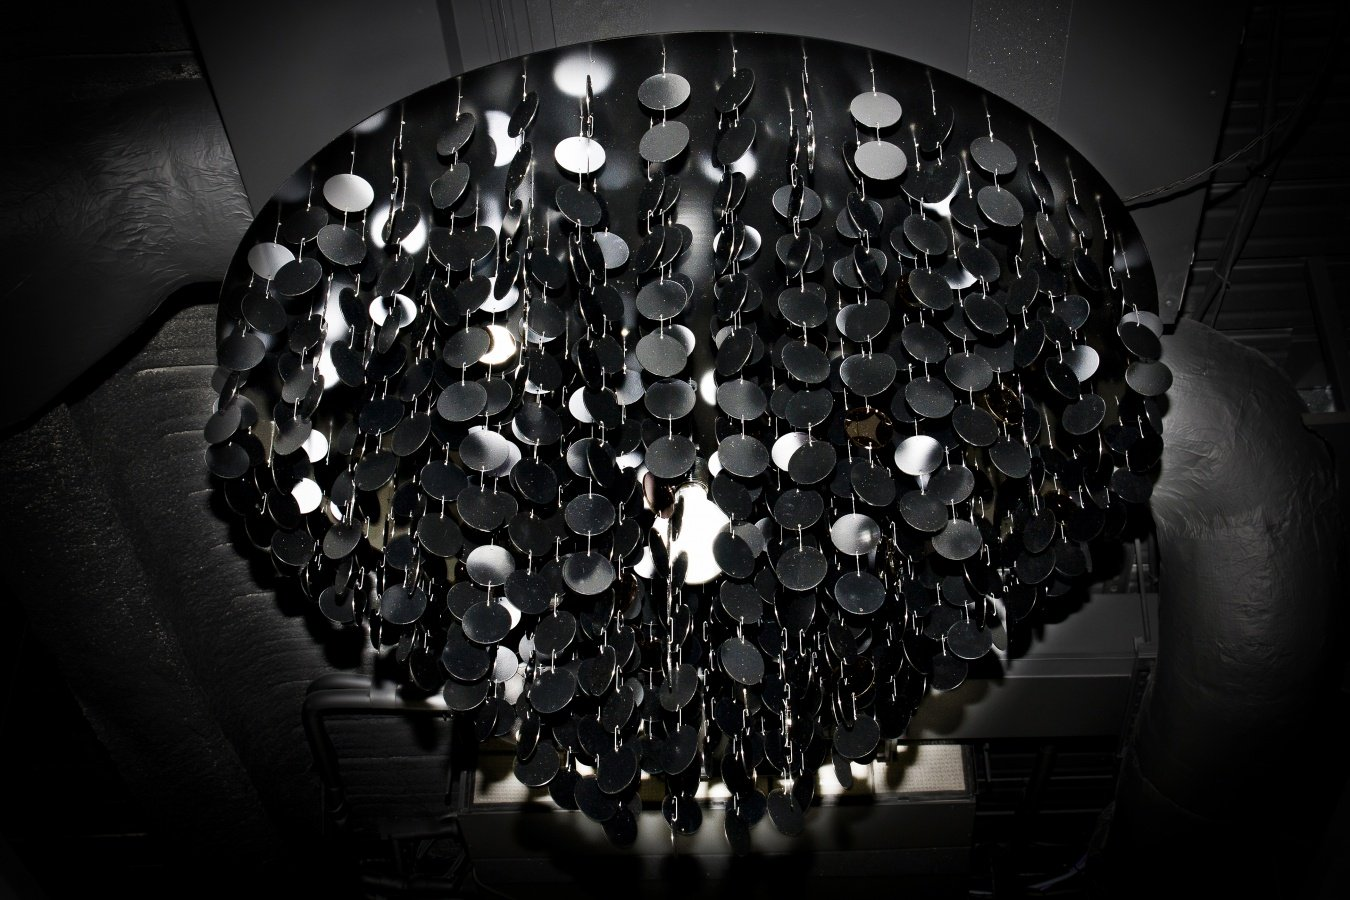 George Singer Modern Chandeliers And Lighting Installations Black Oyster Chandelier Photo 2 Www Georgesinger Co Uk